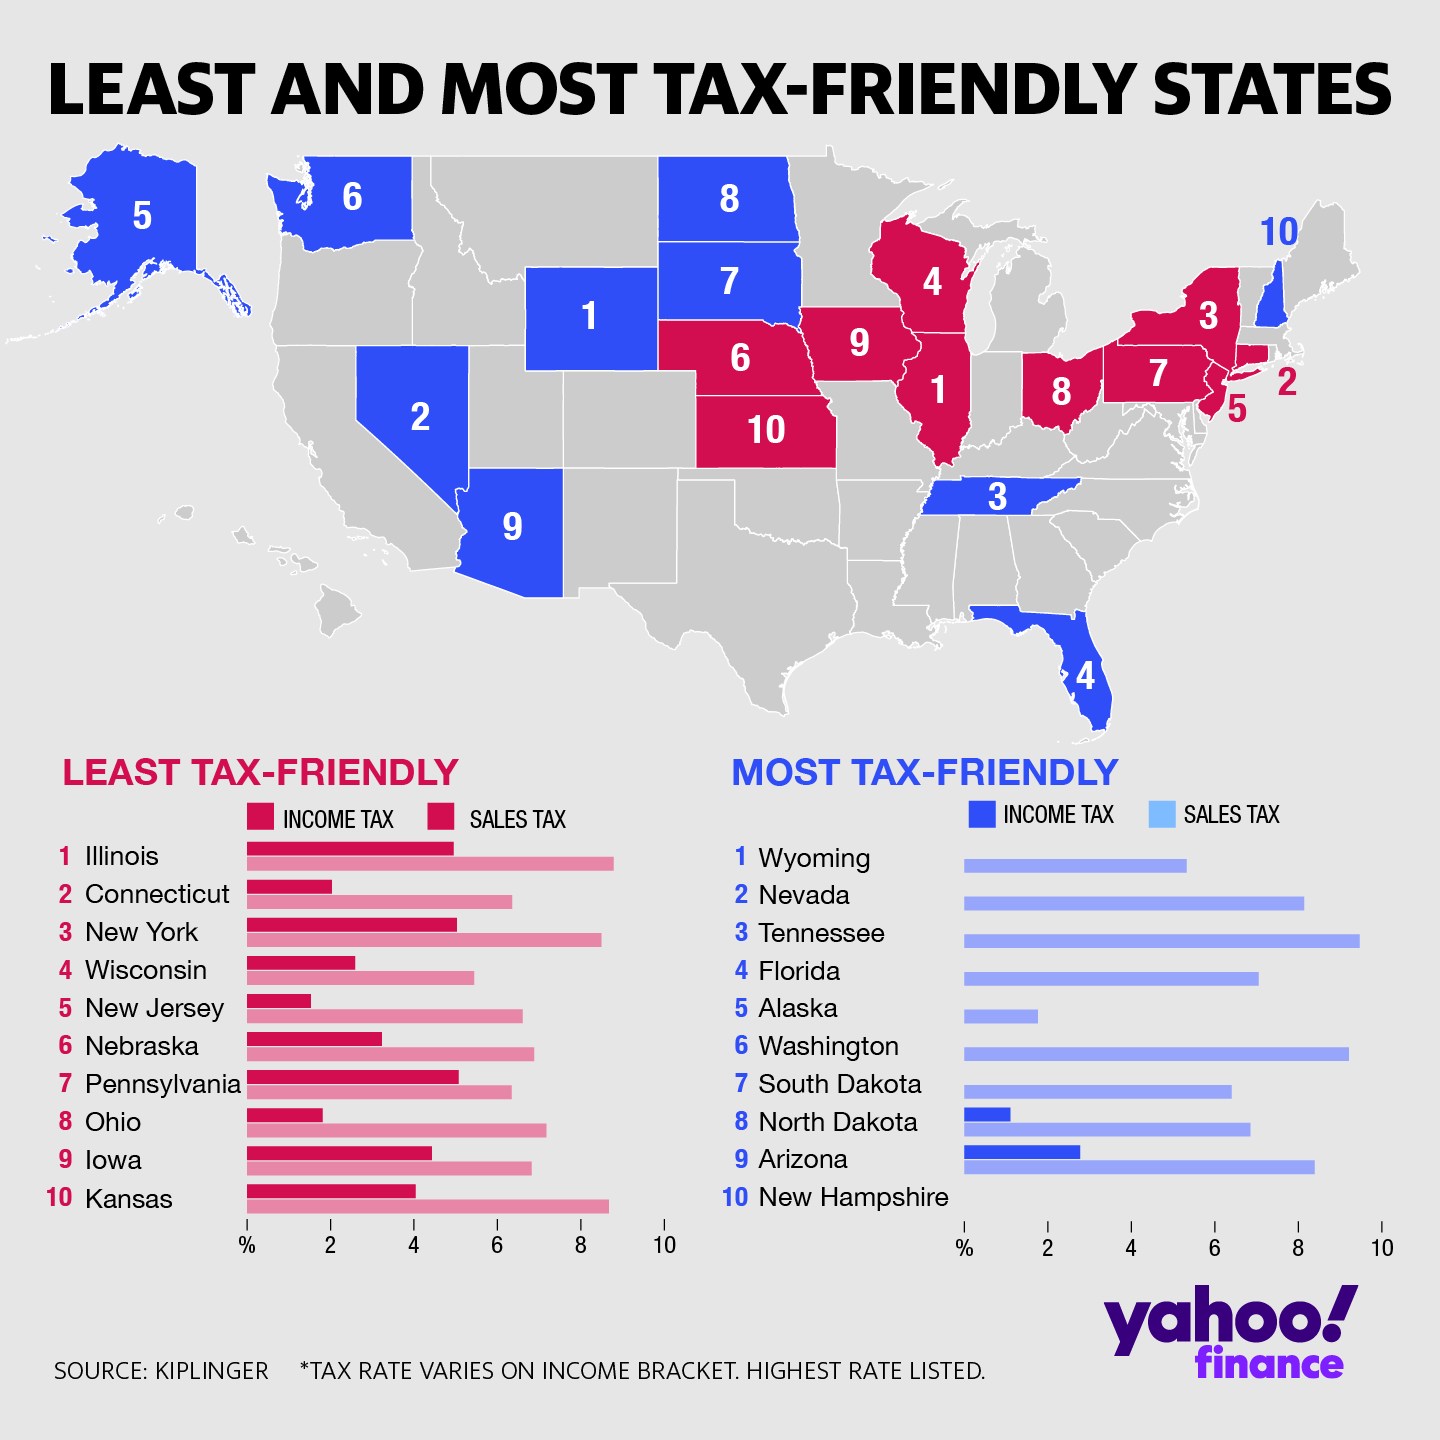 Pin by Sue Wolf on Arizona in 2020 State tax, Gas tax